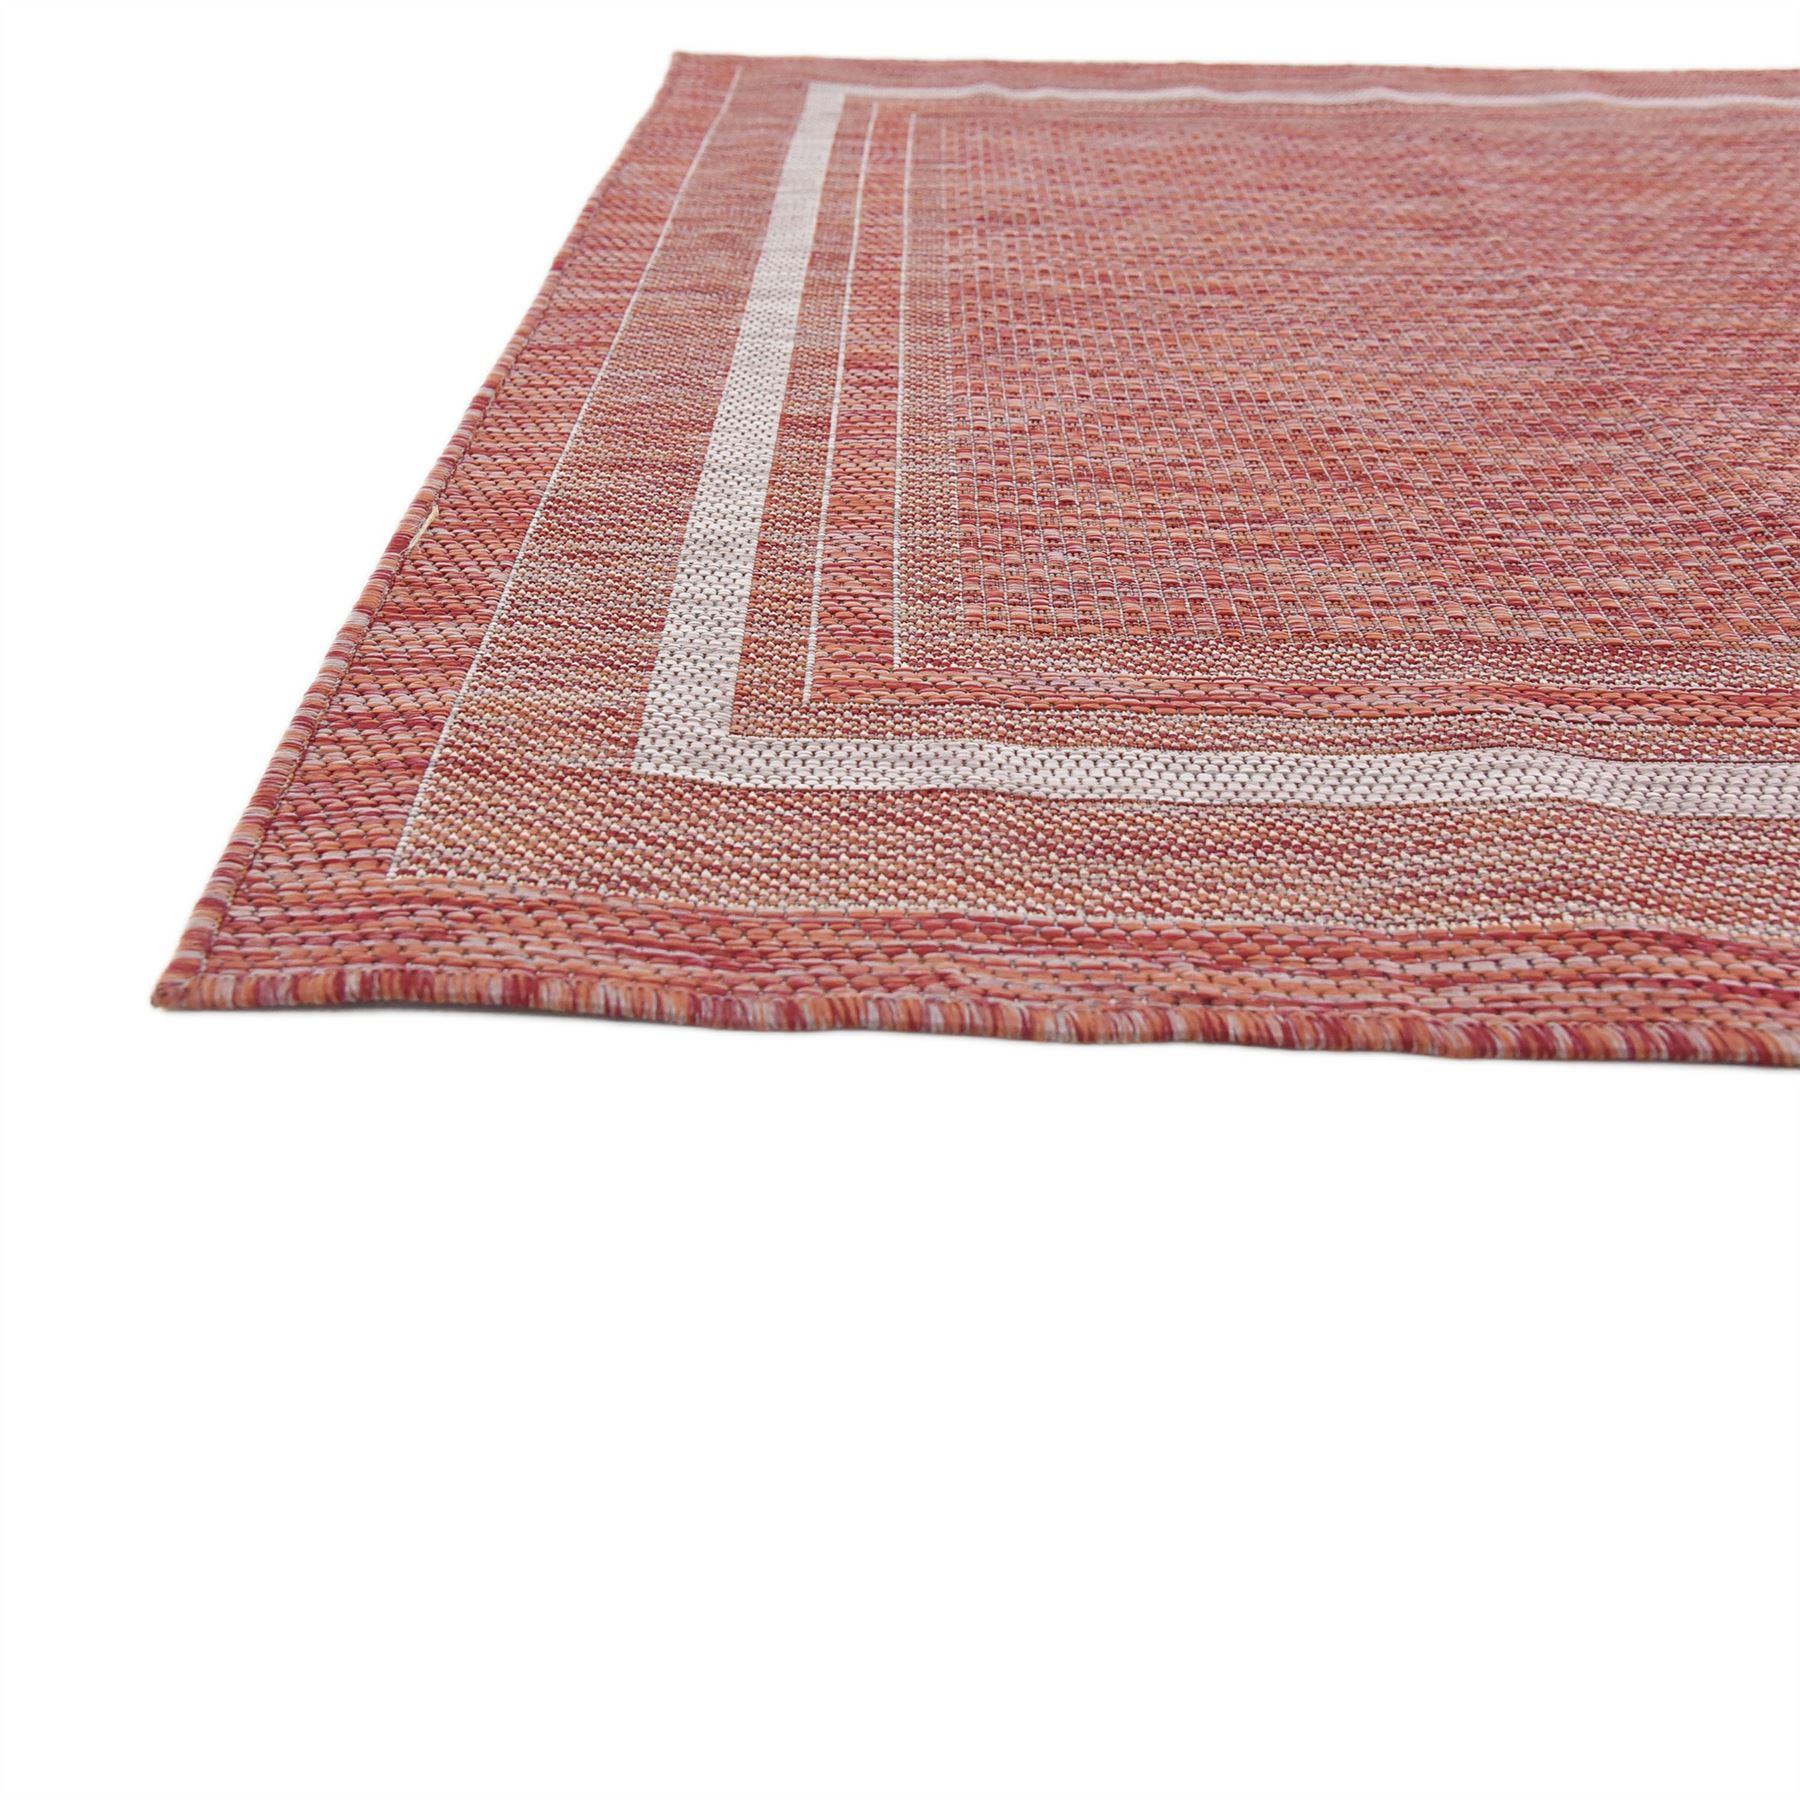 Contemporary Outdoor Area Rugs: Modern Thin Plain Outdoor Area Rug Contemporary Border